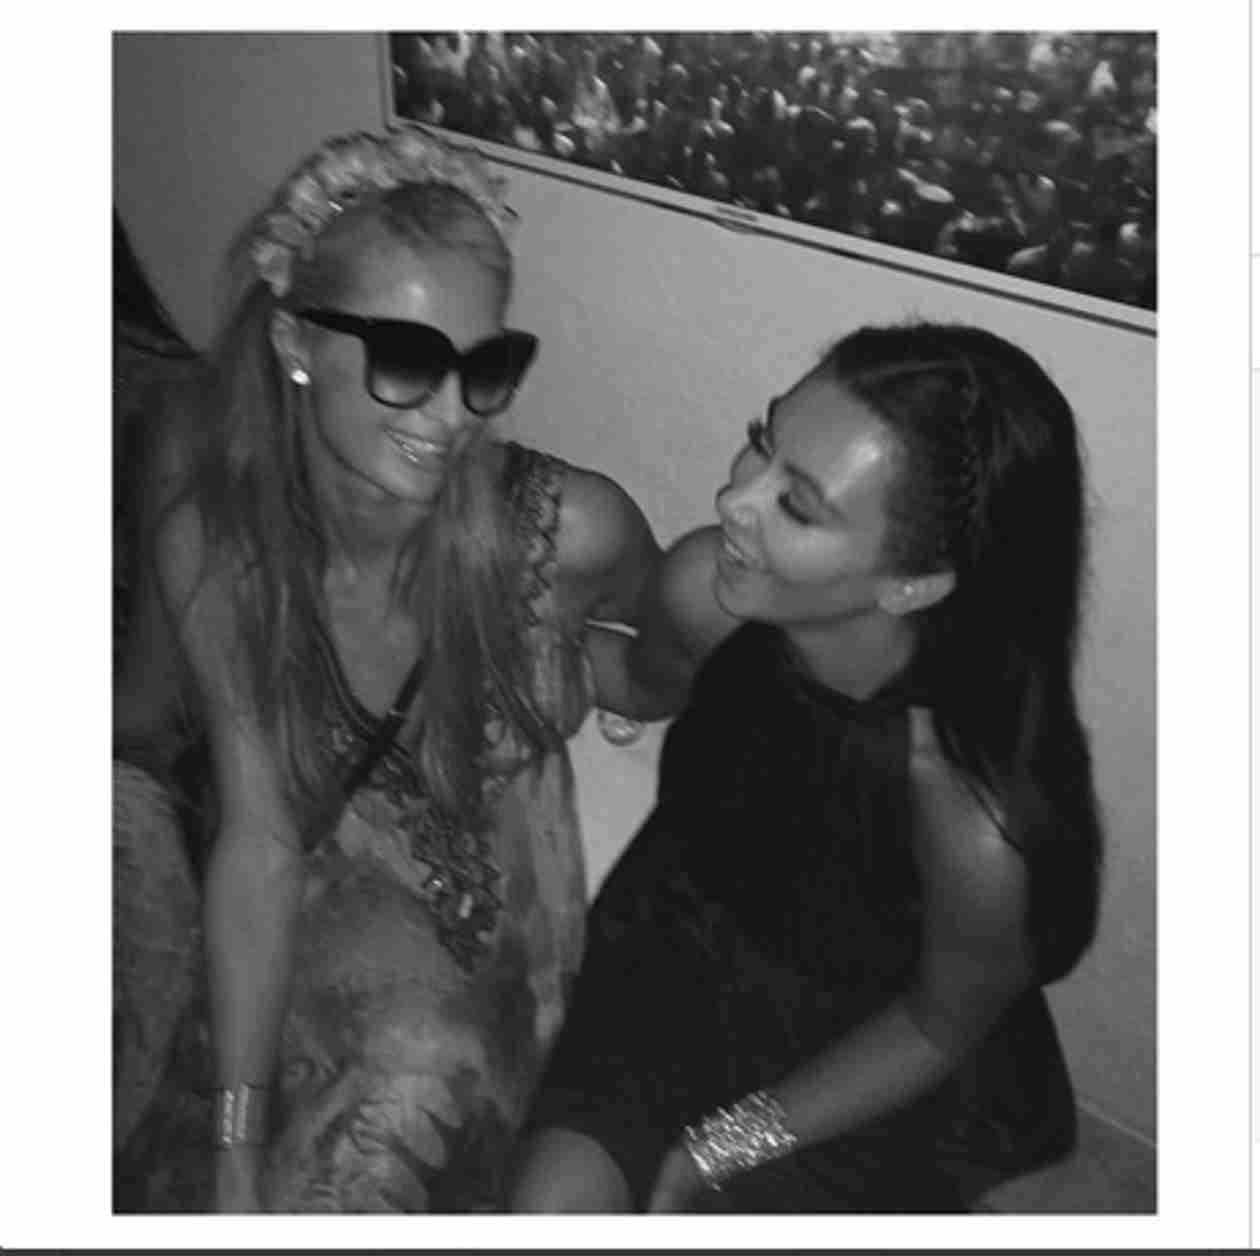 Kim Kardashian Posts Cute Pic of Herself With Paris Hilton — Feud Over? (VIDEO)